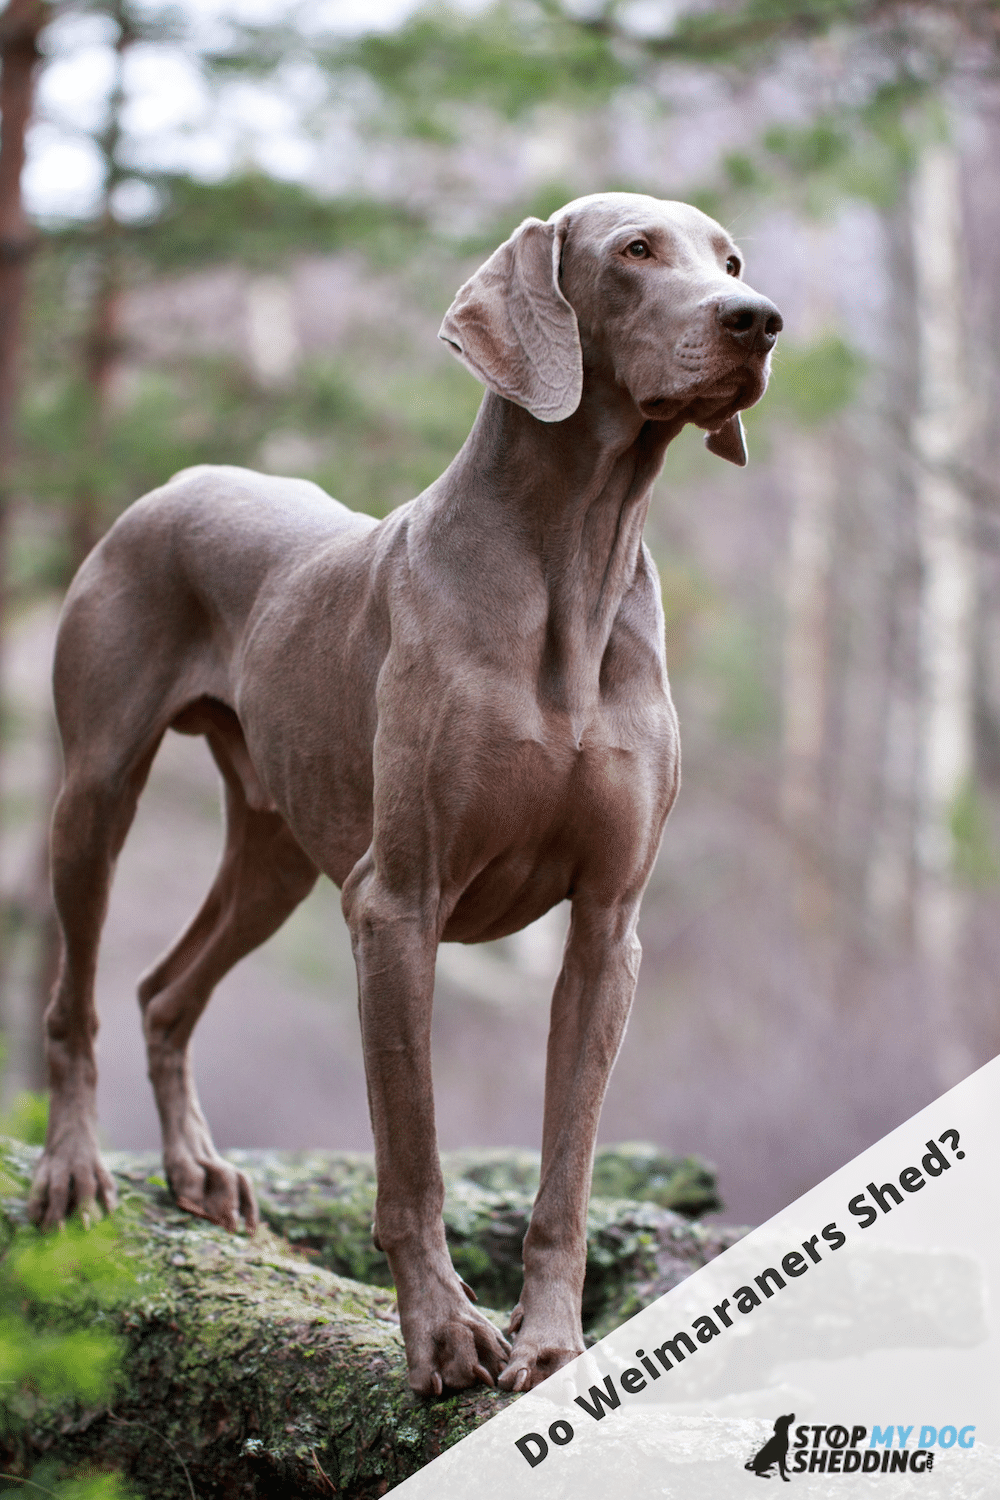 Do Weimaraners Shed Lots?